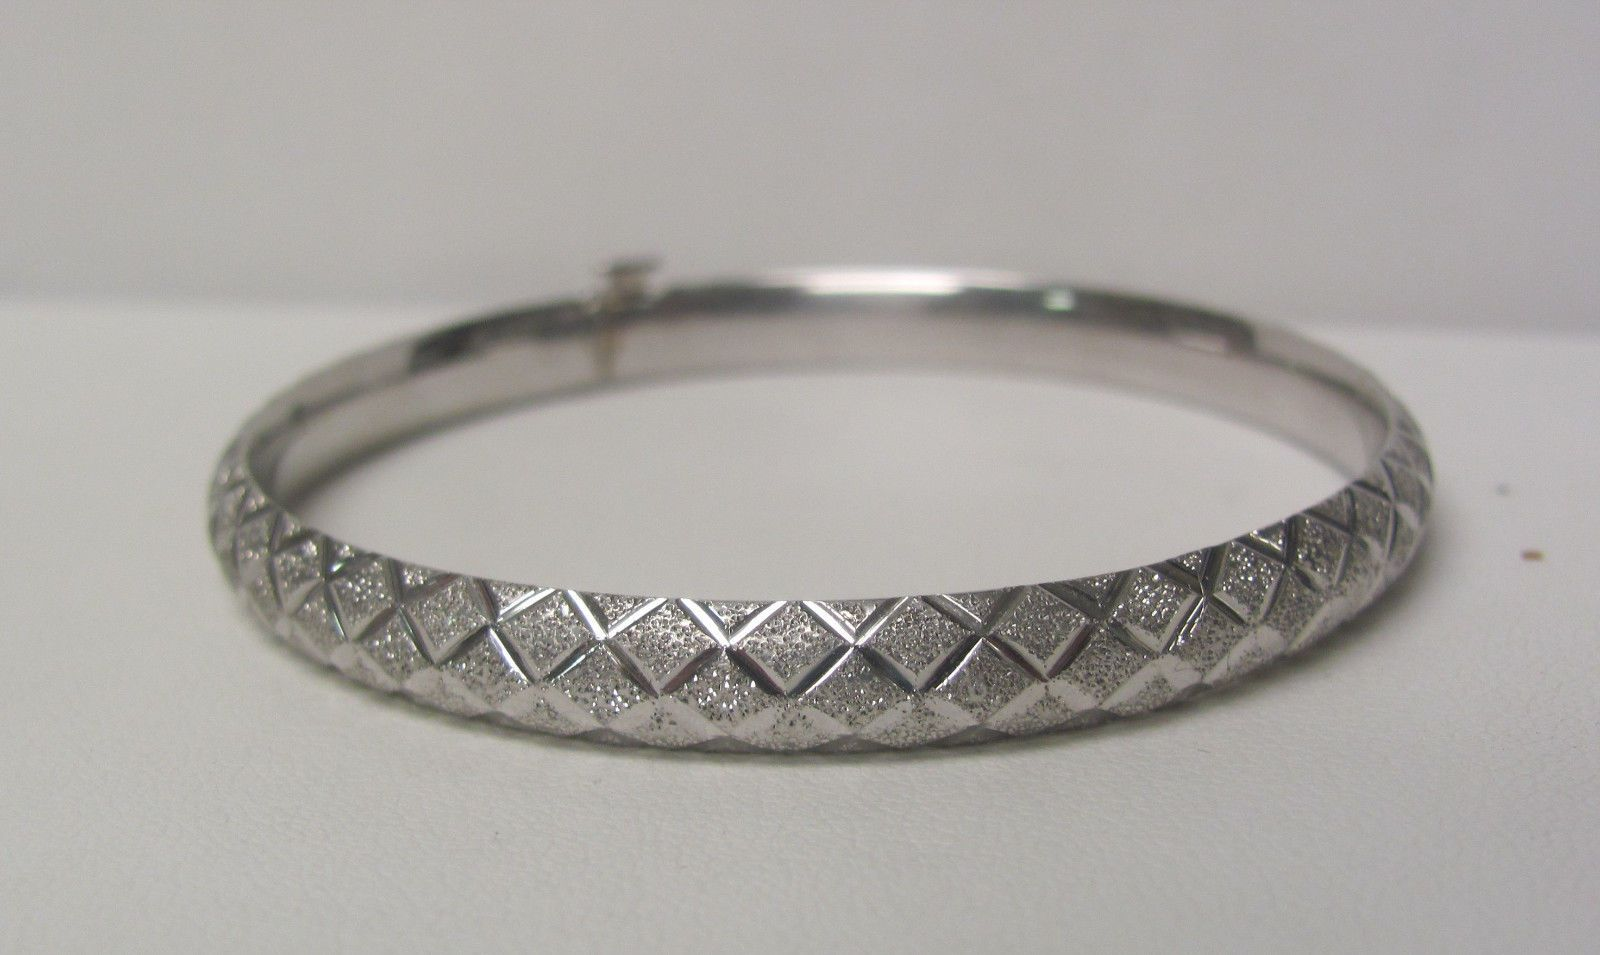 K white gold multi finish etched geometric design hinged bangle